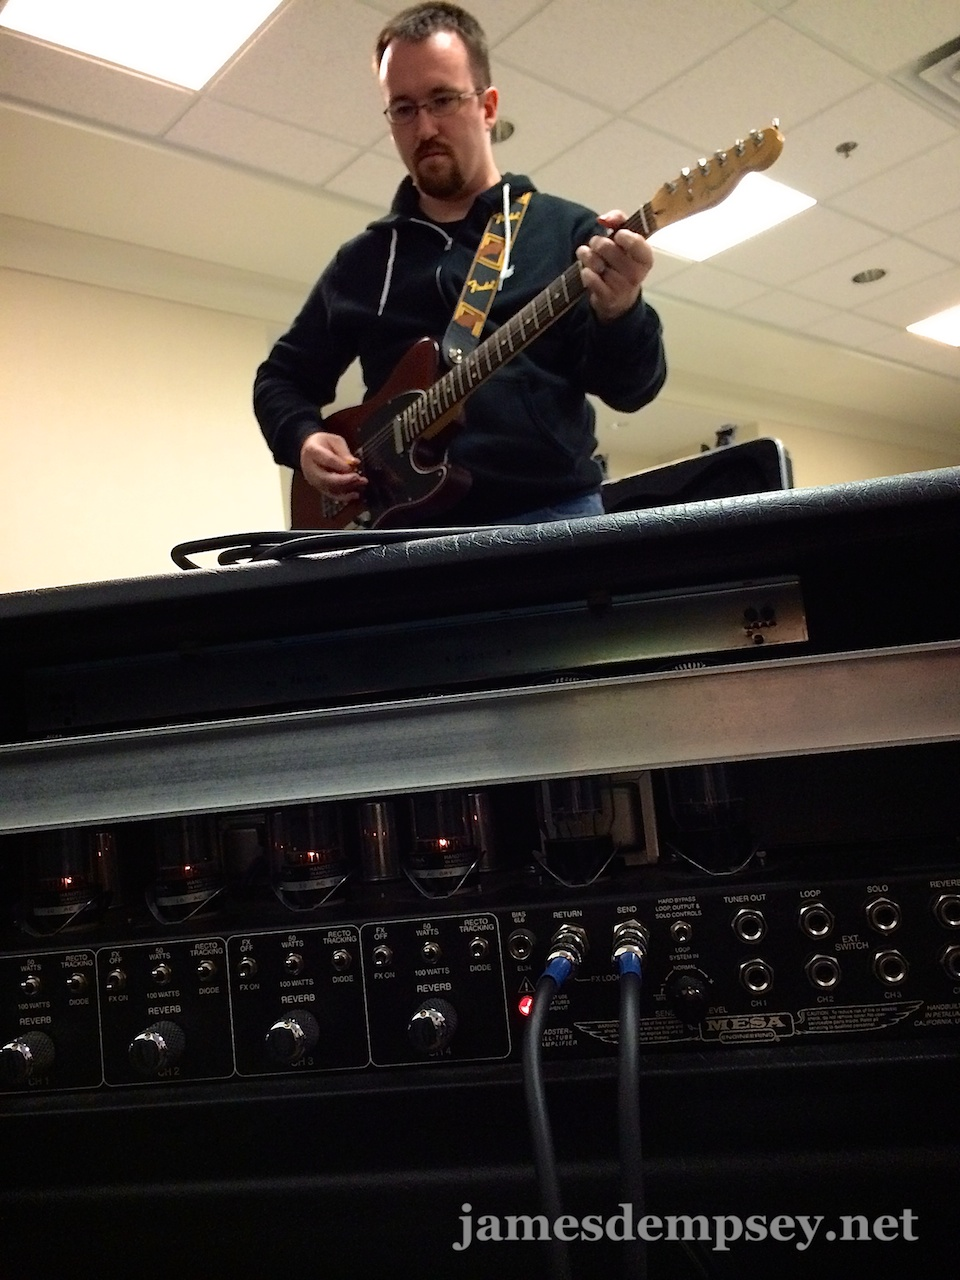 Brandon Alexander playing electric guitar in front of a big amplifier